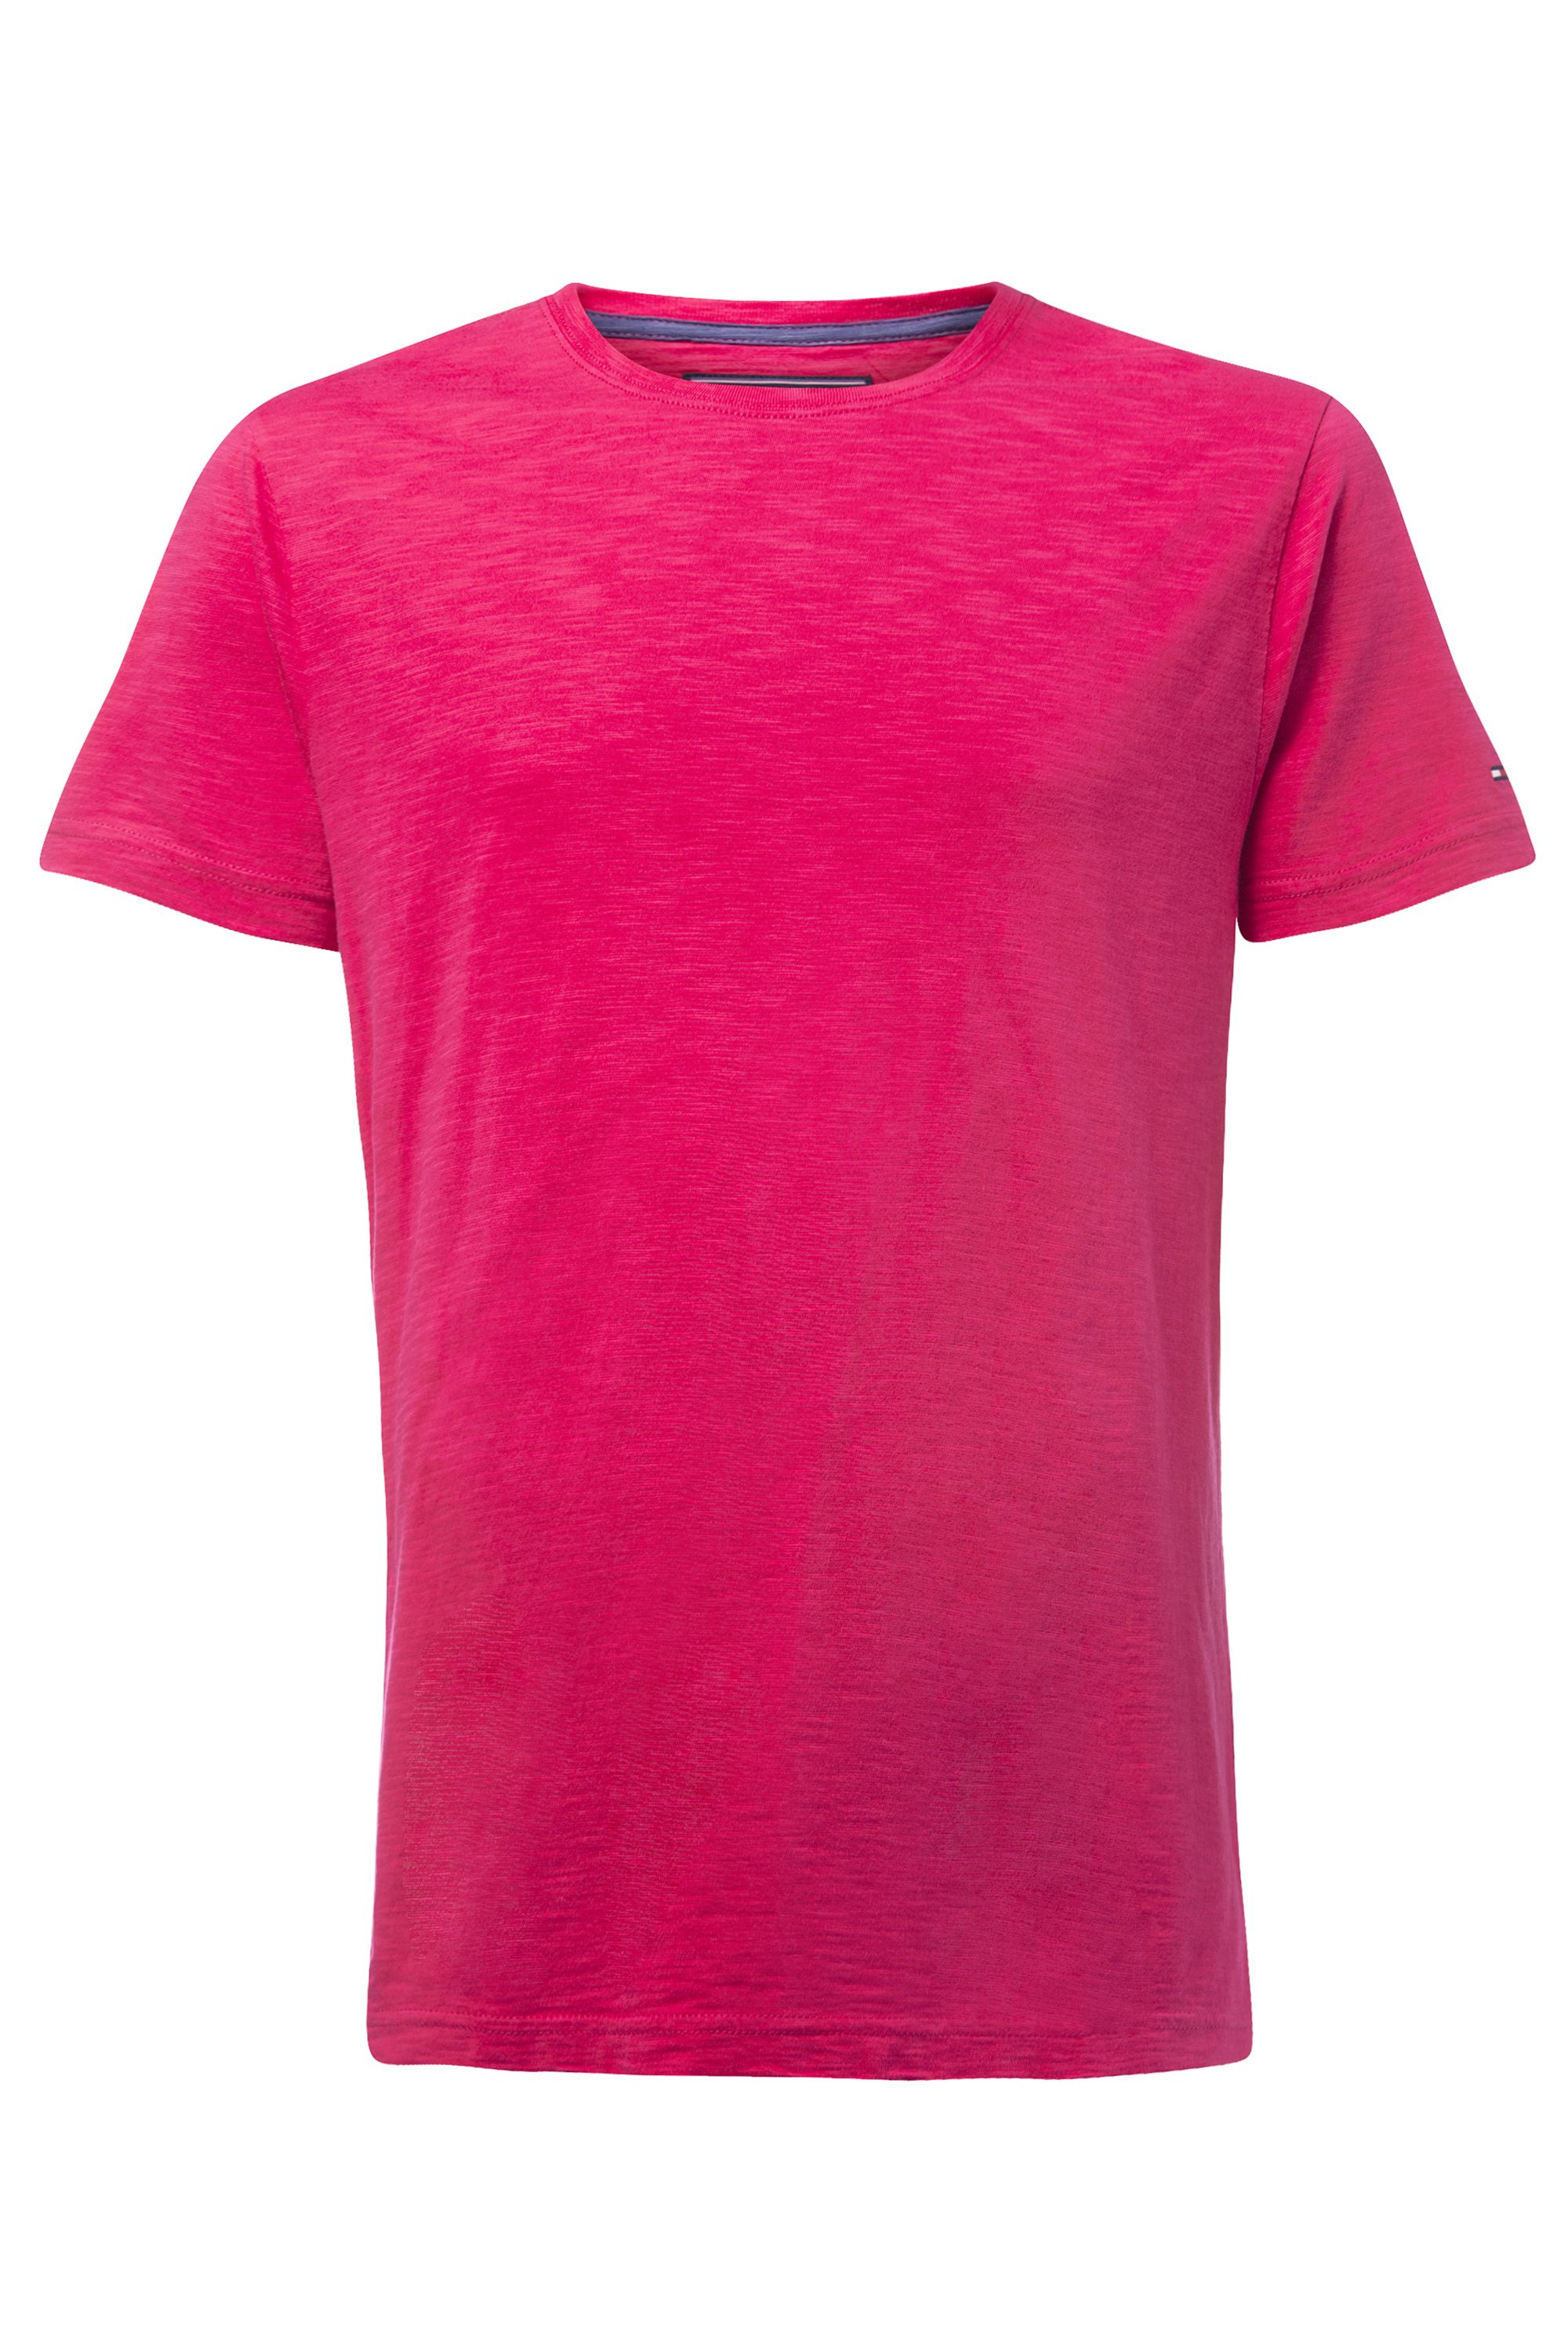 Men's Tommy Hilfiger Flame jersey t-shirt, Pink